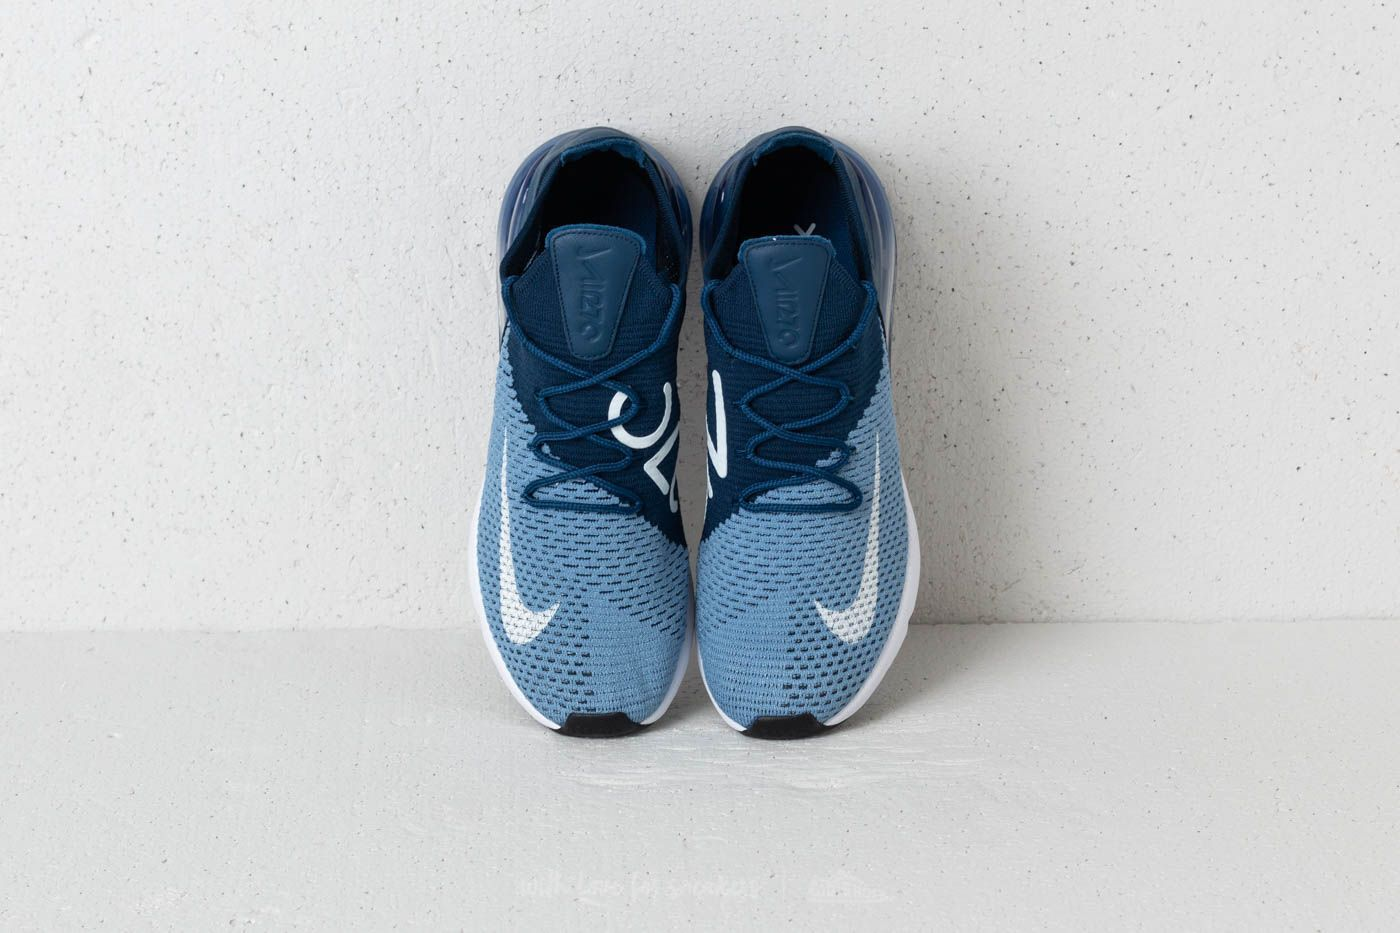 on sale 912e4 40c96 Nike Air Max 270 Flyknit   Work Blue  White-Brave Blue   169€  airmax  nike   running  blue  sneakers